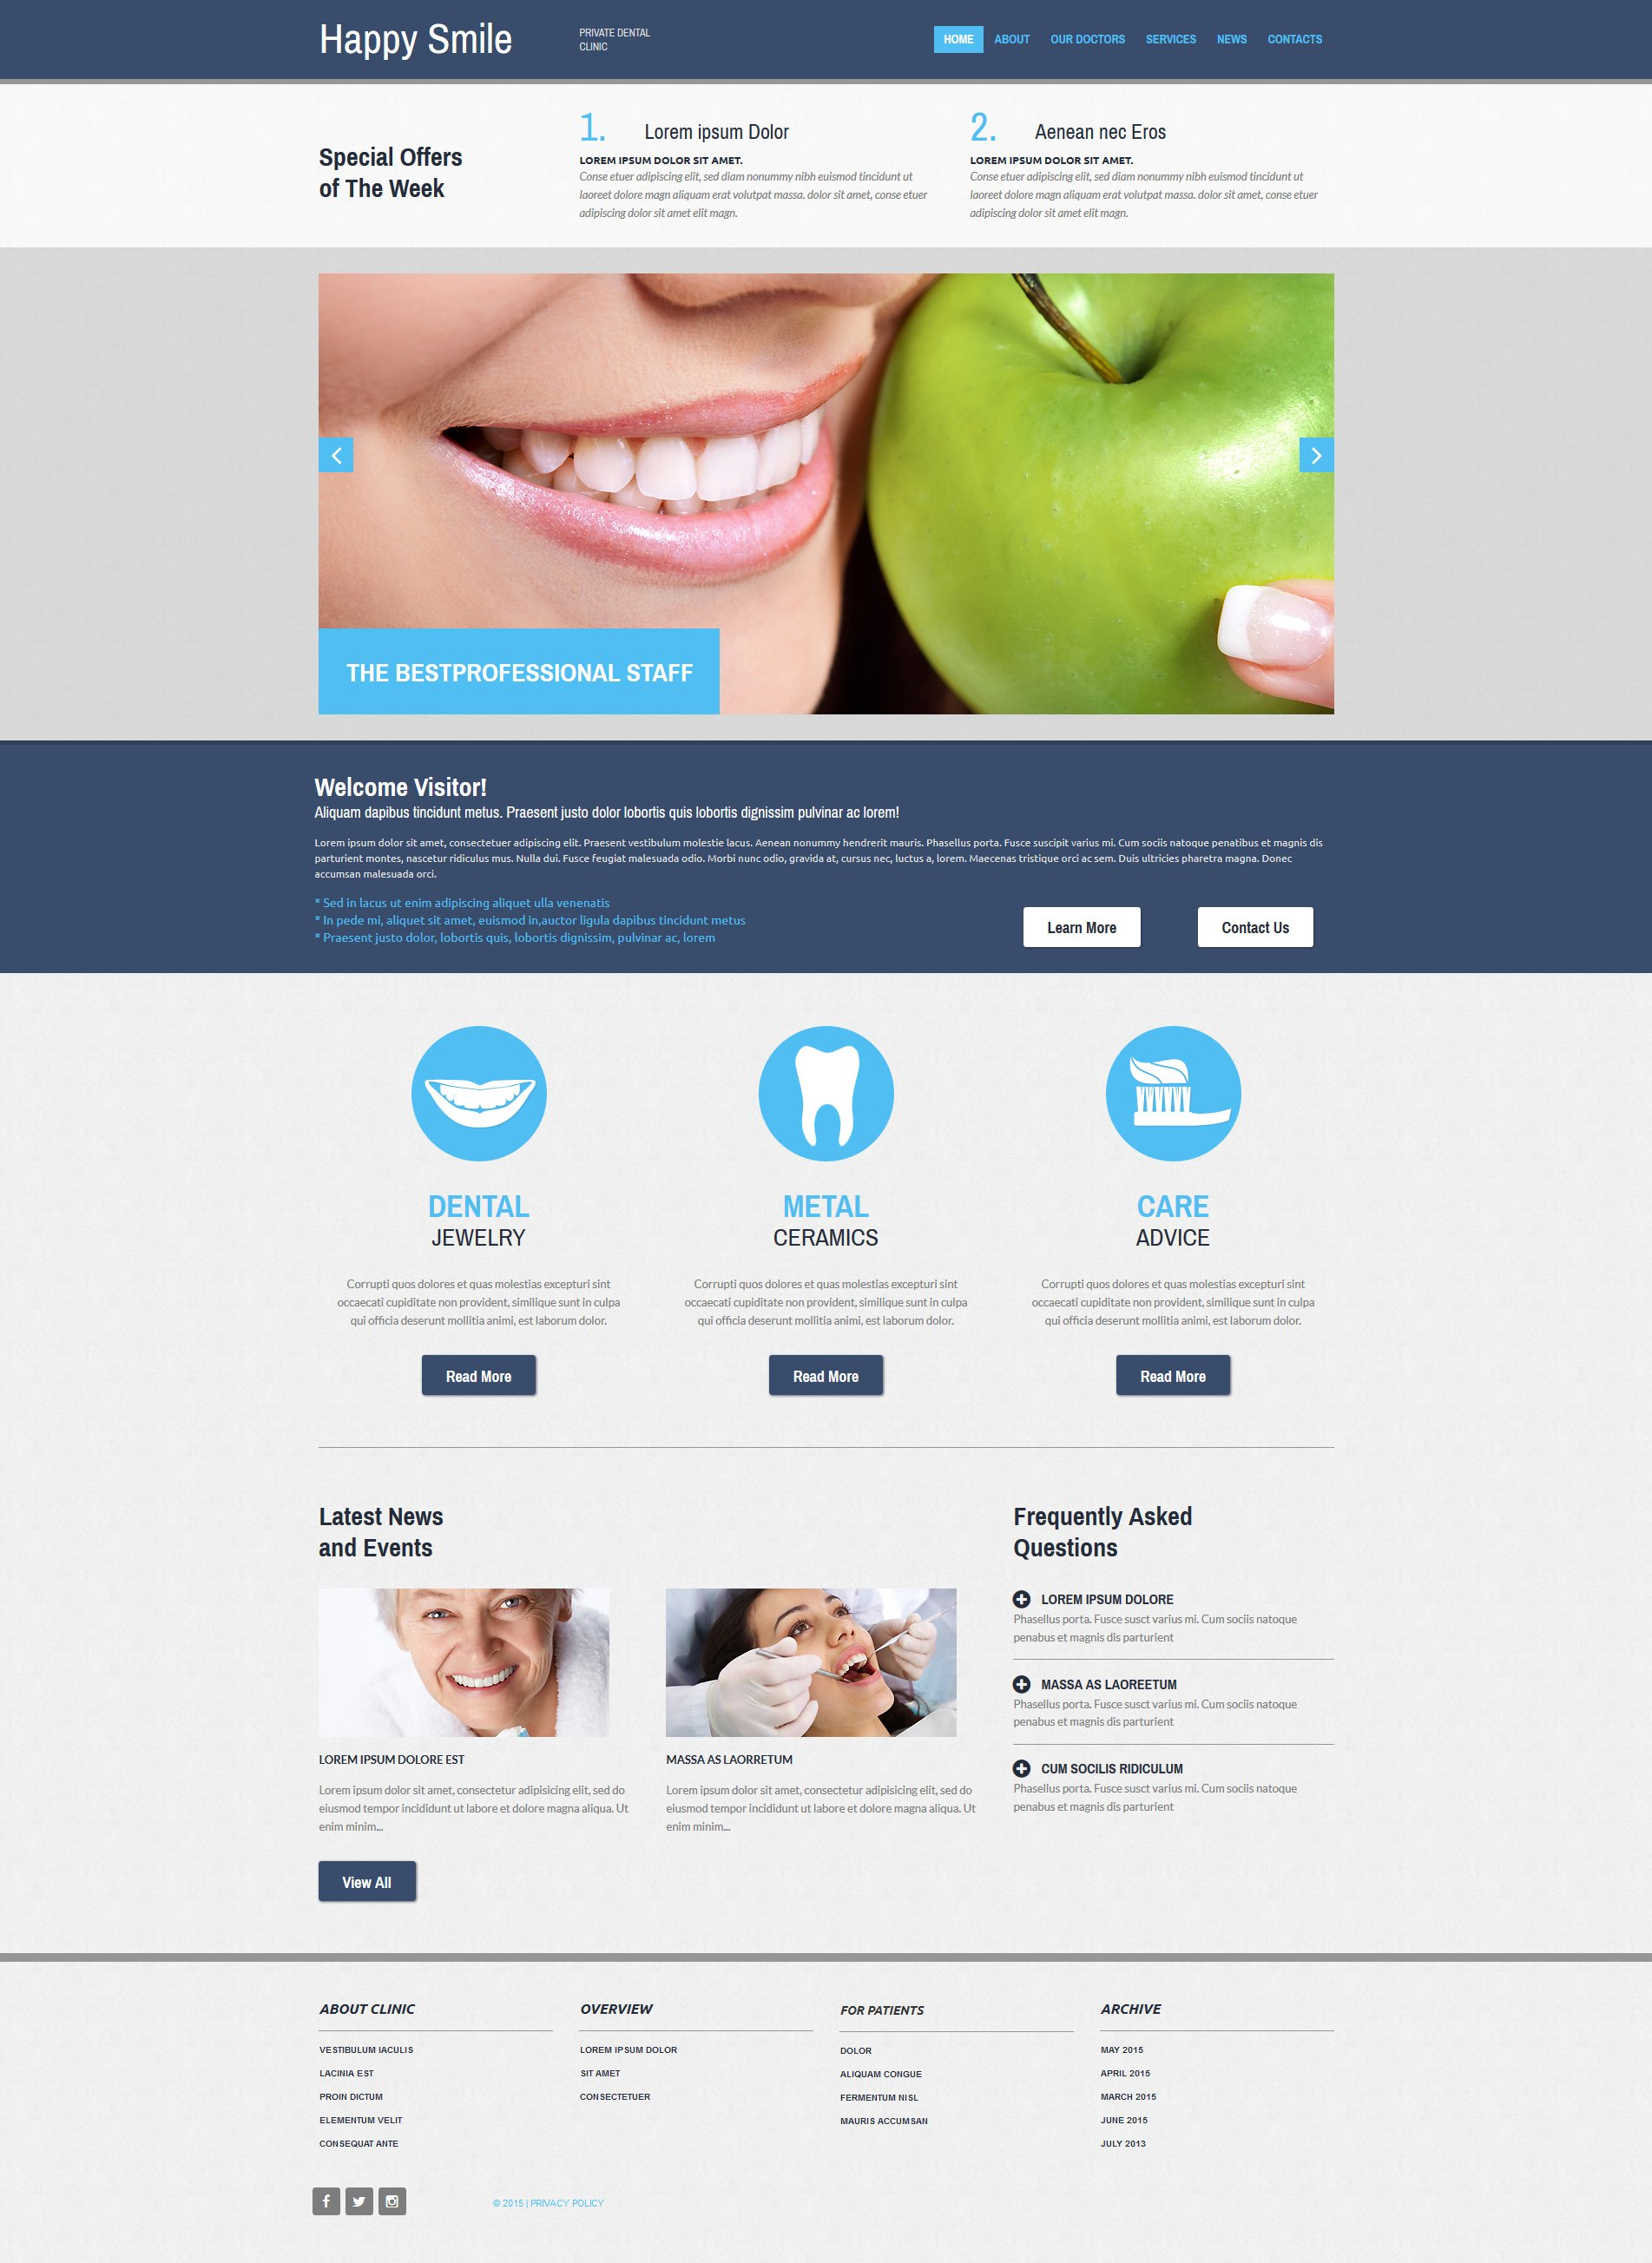 The Happy Smile Moto CMS 3 Templates Design 53728, one of the best Moto CMS 3 templates of its kind (medical, most popular), also known as happy smile Moto CMS 3 template, dentist Moto CMS 3 template, teeth Moto CMS 3 template, policlinic Moto CMS 3 template, bright smile Moto CMS 3 template, doctor Moto CMS 3 template, services Moto CMS 3 template, dentistry Moto CMS 3 template, cosmetic care Moto CMS 3 template, health Moto CMS 3 template, prices Moto CMS 3 template, bleaching Moto CMS 3 template, prosthesis Moto CMS 3 template, crown of  tooth Moto CMS 3 template, implant Moto CMS 3 template, clients Moto CMS 3 template, testimonials Moto CMS 3 template, pain Moto CMS 3 template, painless Moto CMS 3 template, treatment solution Moto CMS 3 template, technology Moto CMS 3 template, dental Moto CMS 3 template, services Moto CMS 3 template, stopping Moto CMS 3 template, caries Moto CMS 3 template, parodontosis and related with happy smile, dentist, teeth, policlinic, bright smile, doctor, services, dentistry, cosmetic care, health, prices, bleaching, prosthesis, crown of  tooth, implant, clients, testimonials, pain, painless, treatment solution, technology, dental, services, stopping, caries, parodontosis, etc.